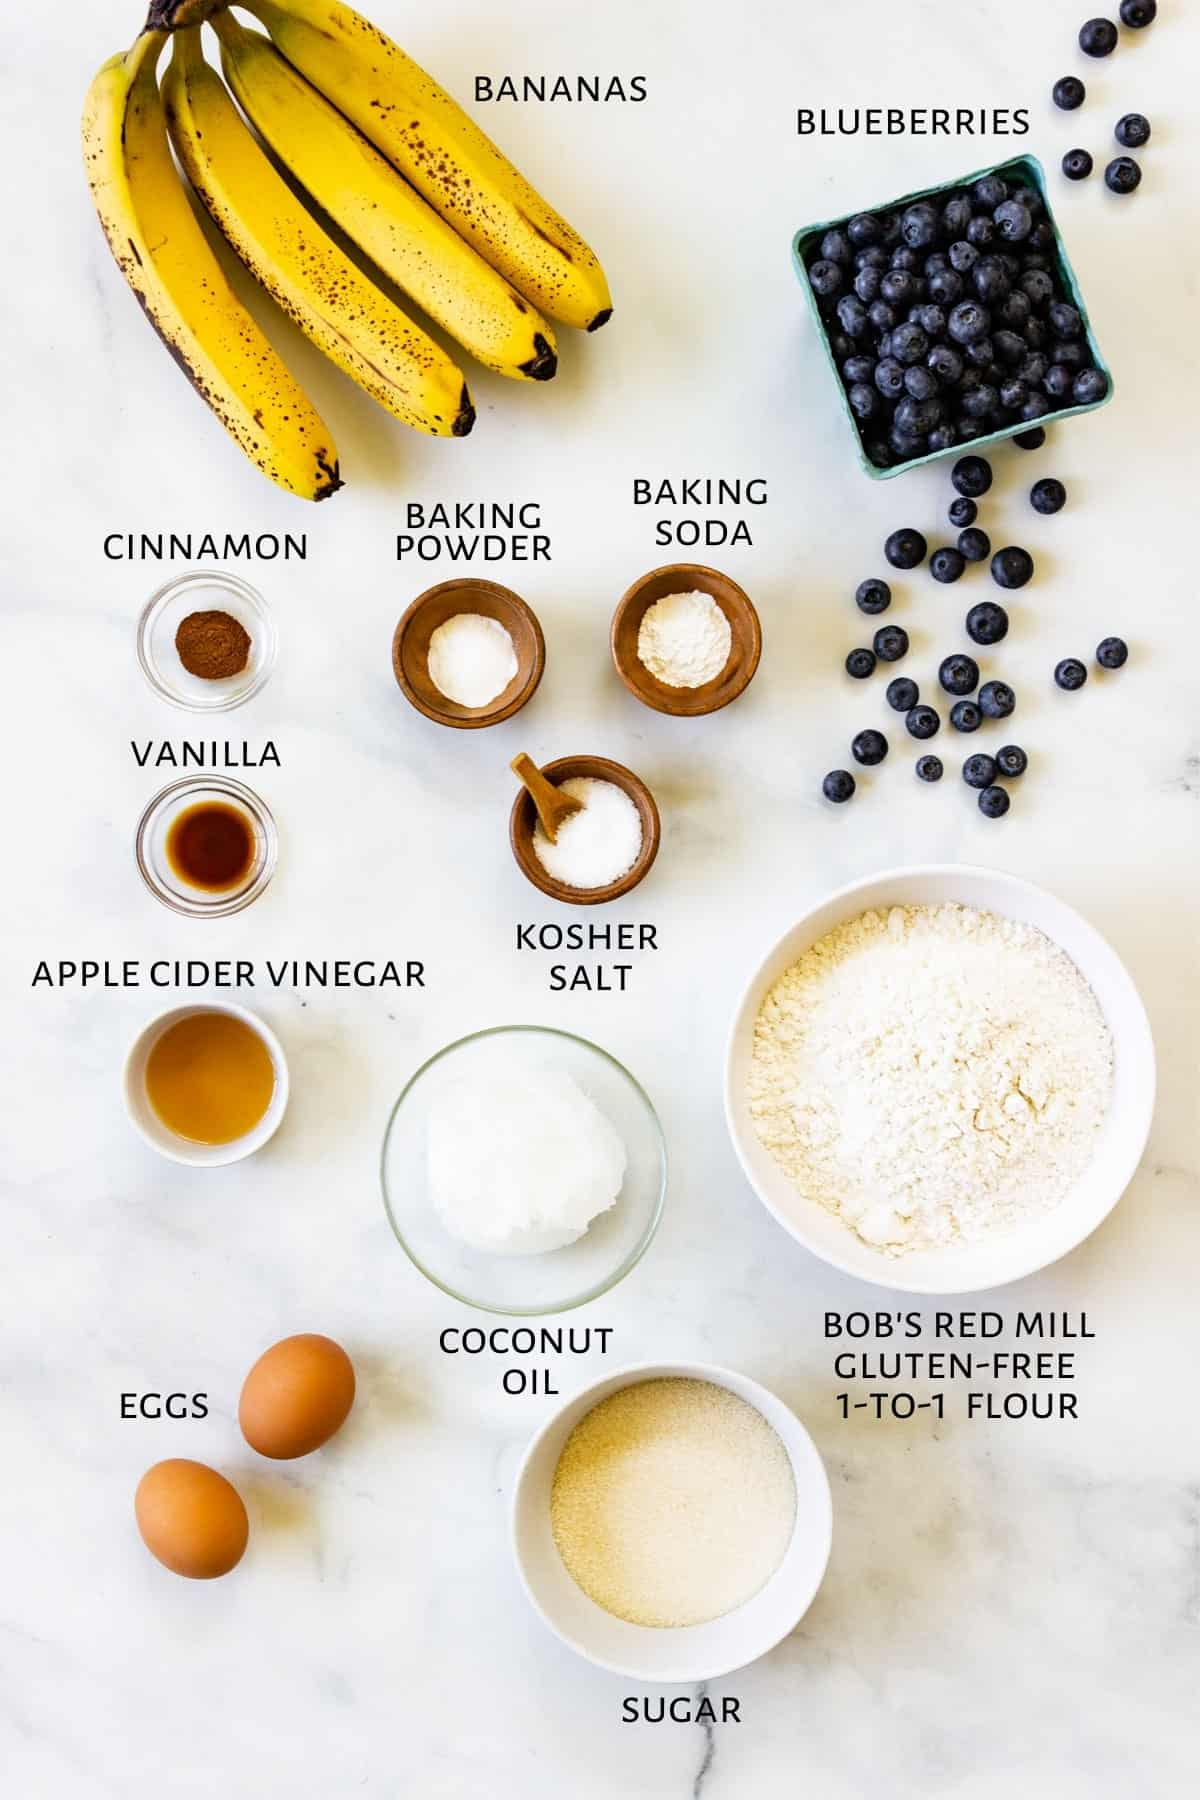 Ingredients for gluten-free blueberry banana muffins are laid out on a marble countertop.